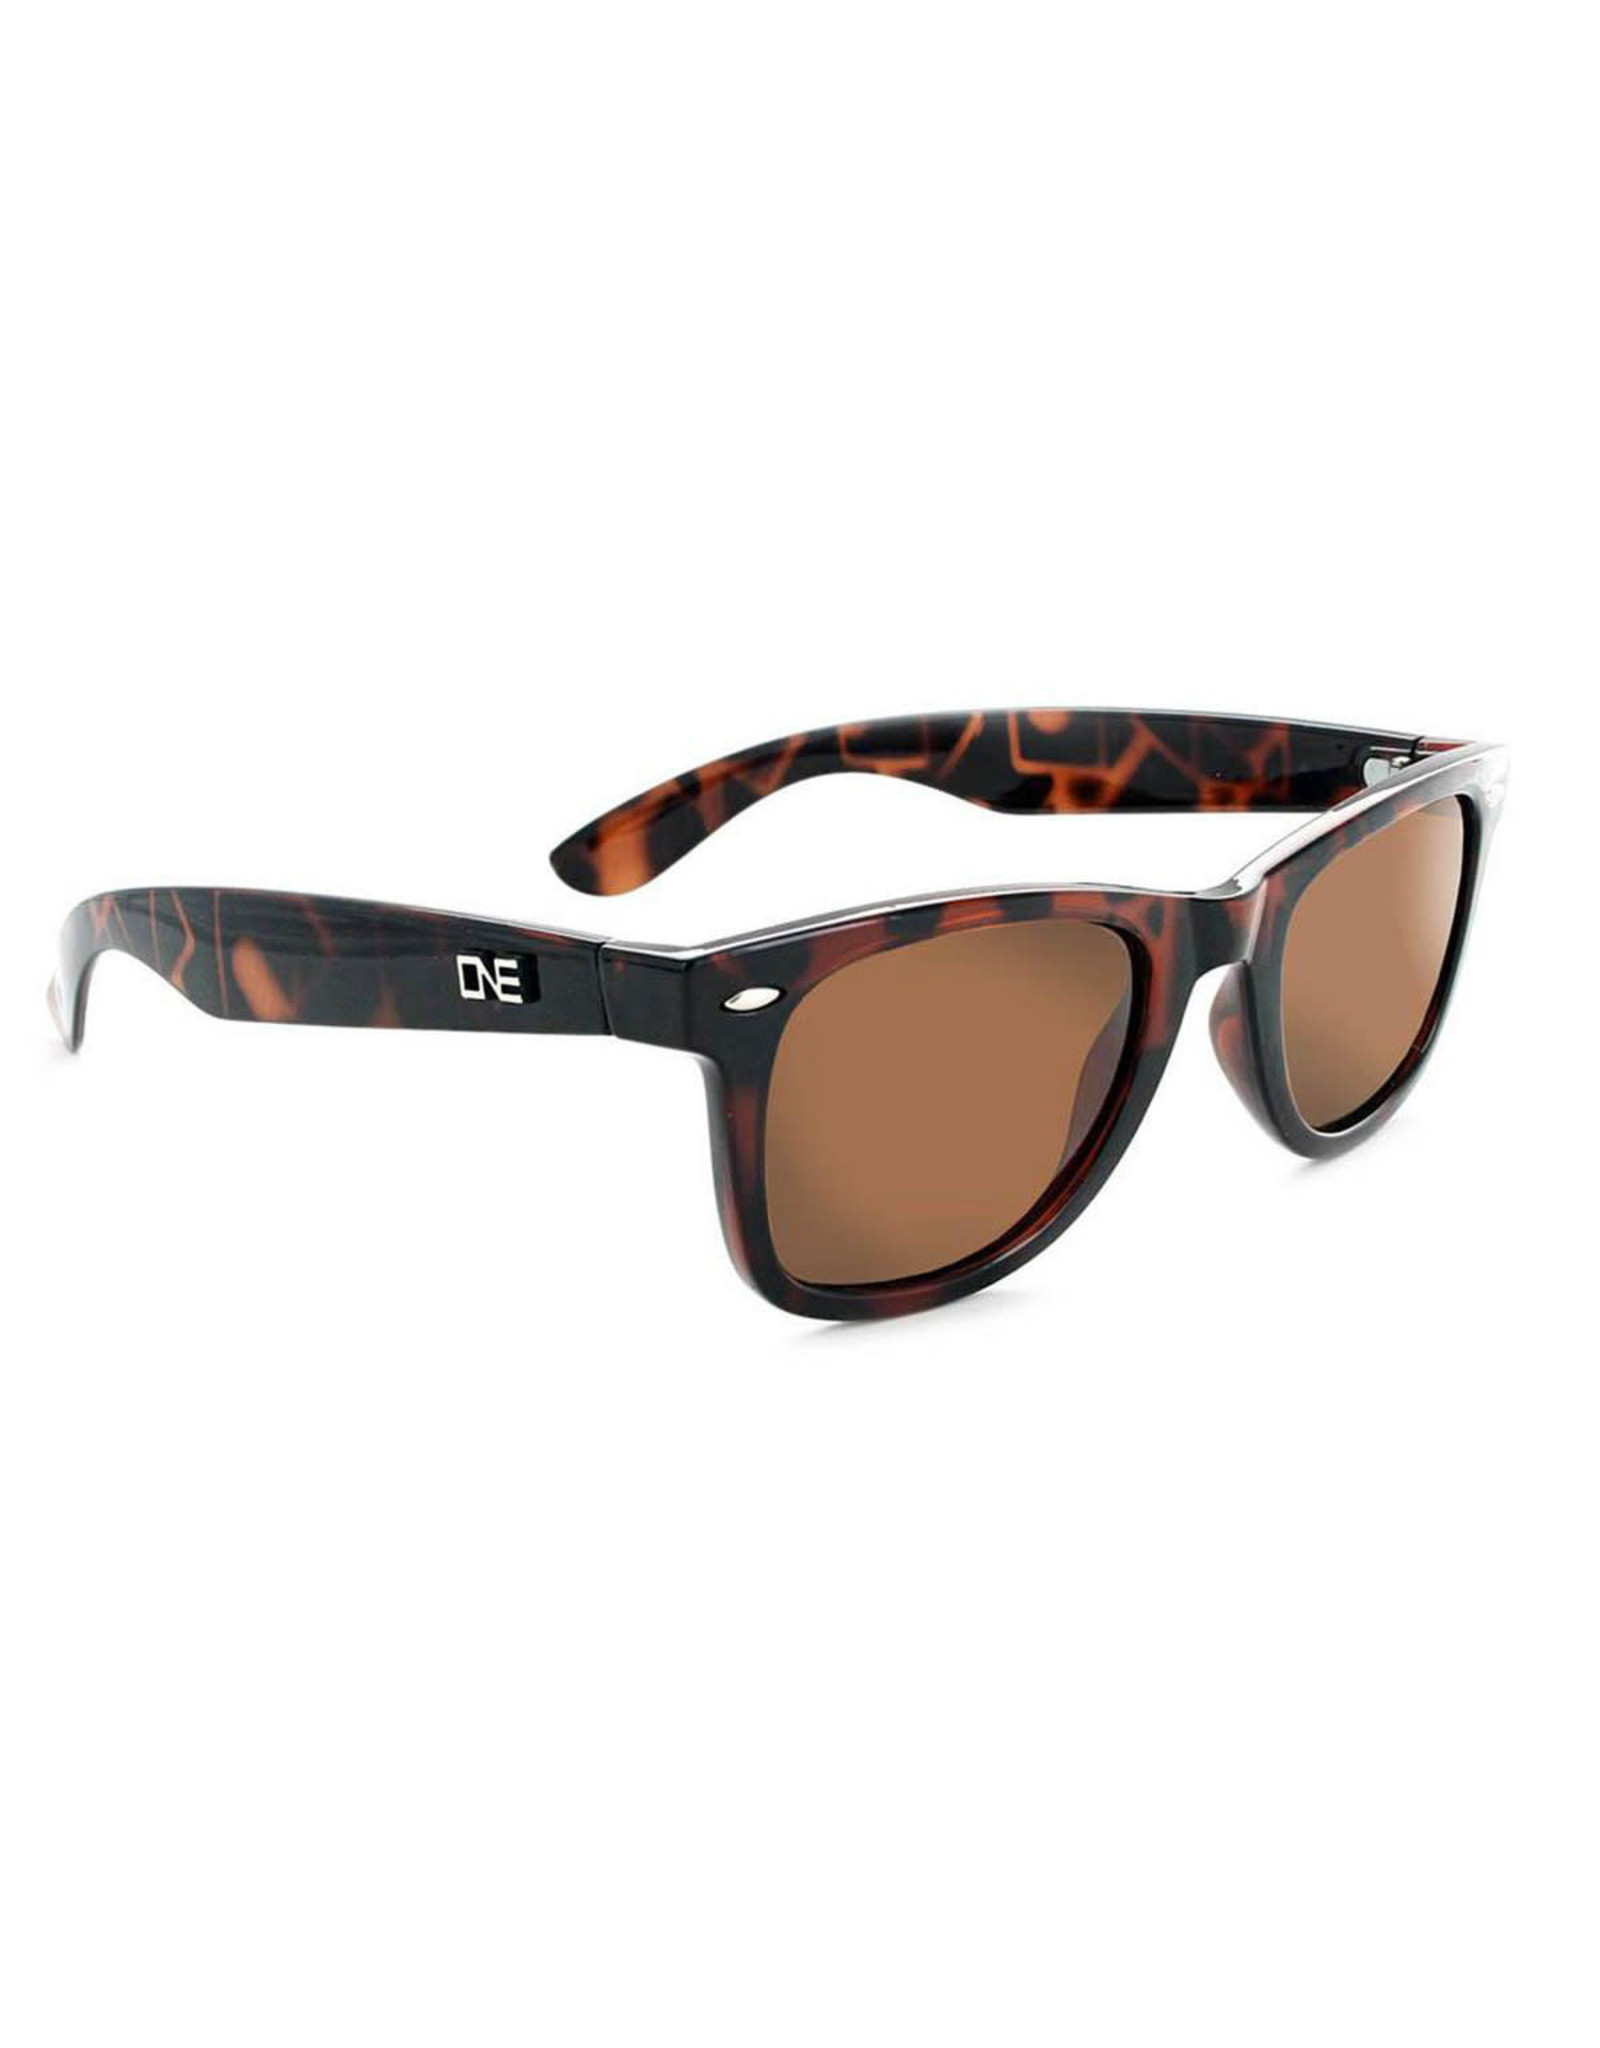 Optic Nerve ONE Dylan Polarized Sunglasses: Shiny Dark Demi with Brown Lens